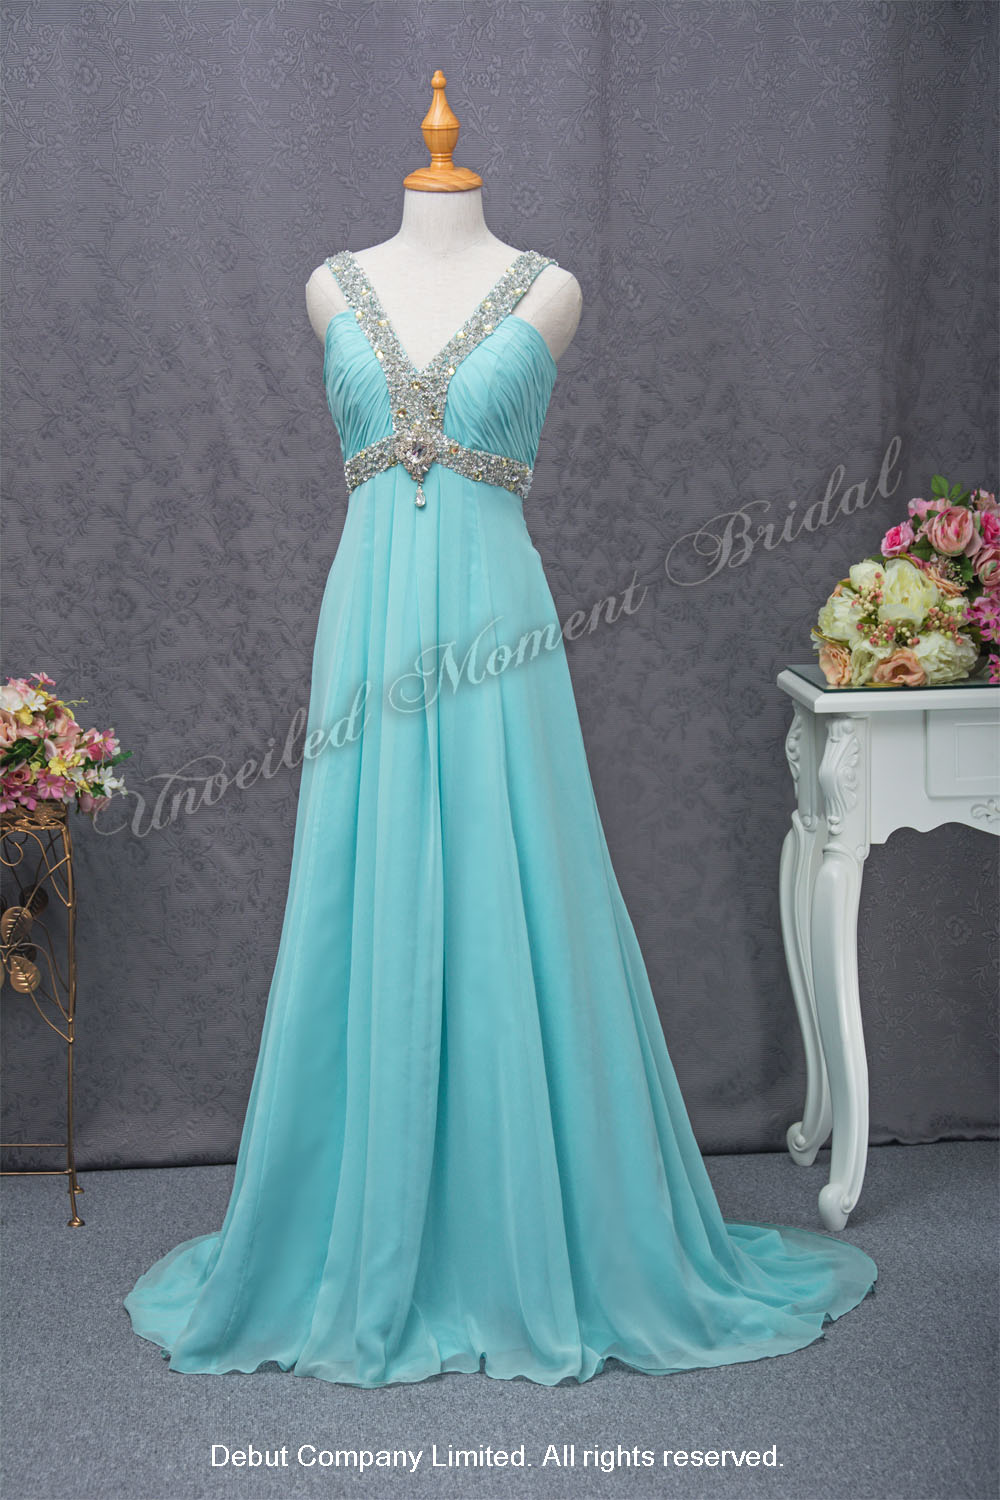 Camisole-style evening dress for maid-of-honour, with beaded deep-V neckline, empire waistline and straps, and a sweep train skirt. Colour: Turquoise Blue 高腰款, 閃片閃石釘珠腰帶吊帶, 拖尾, 湖水藍色晩宴伴娘裙